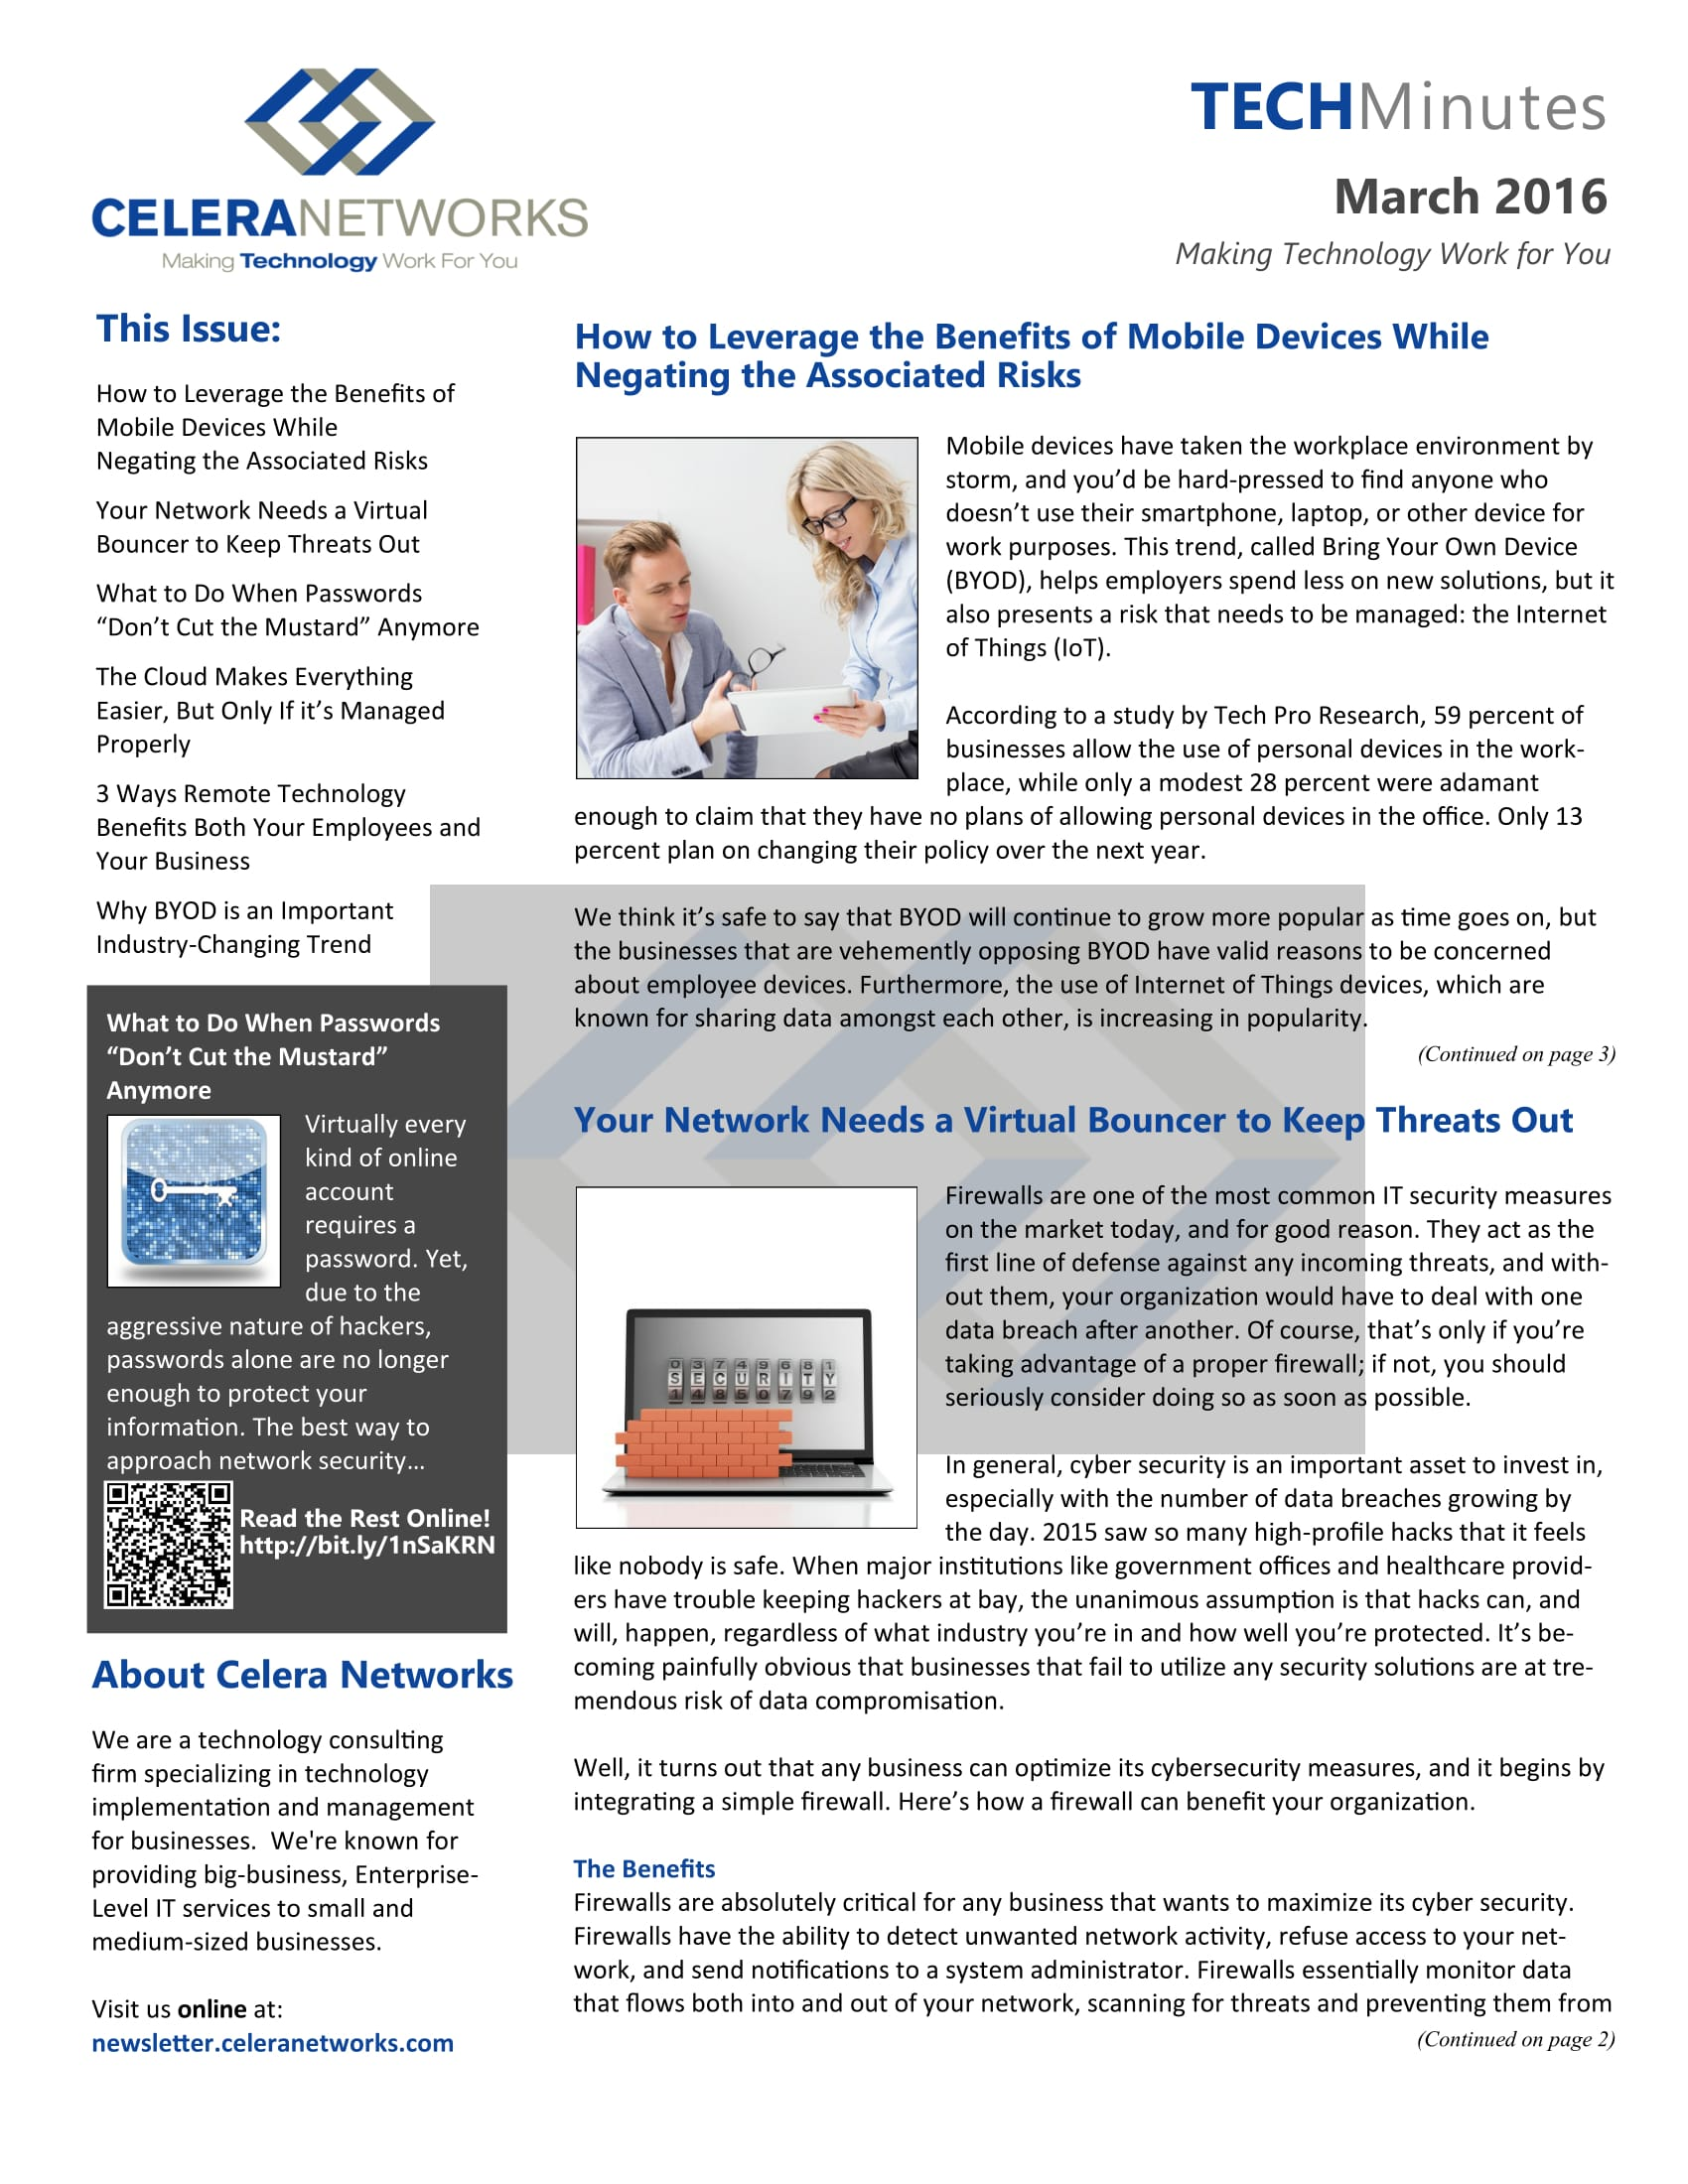 Our Newsletters - Andover, Lawrence, Methuen   Celera